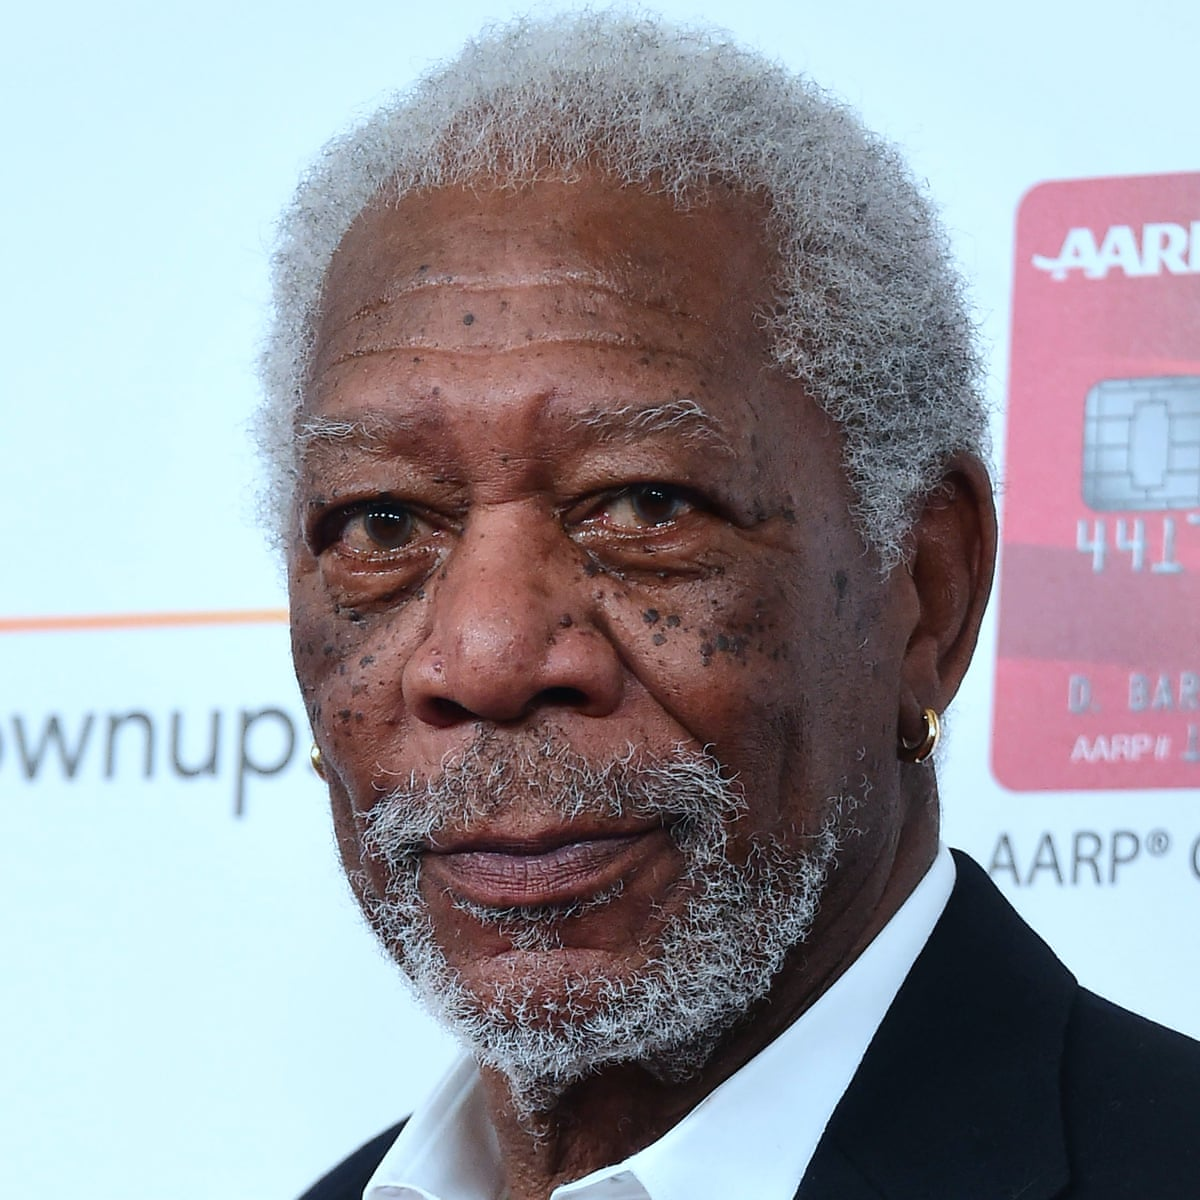 I Did Not Assault Women Morgan Freeman Responds To Allegations Film The Guardian